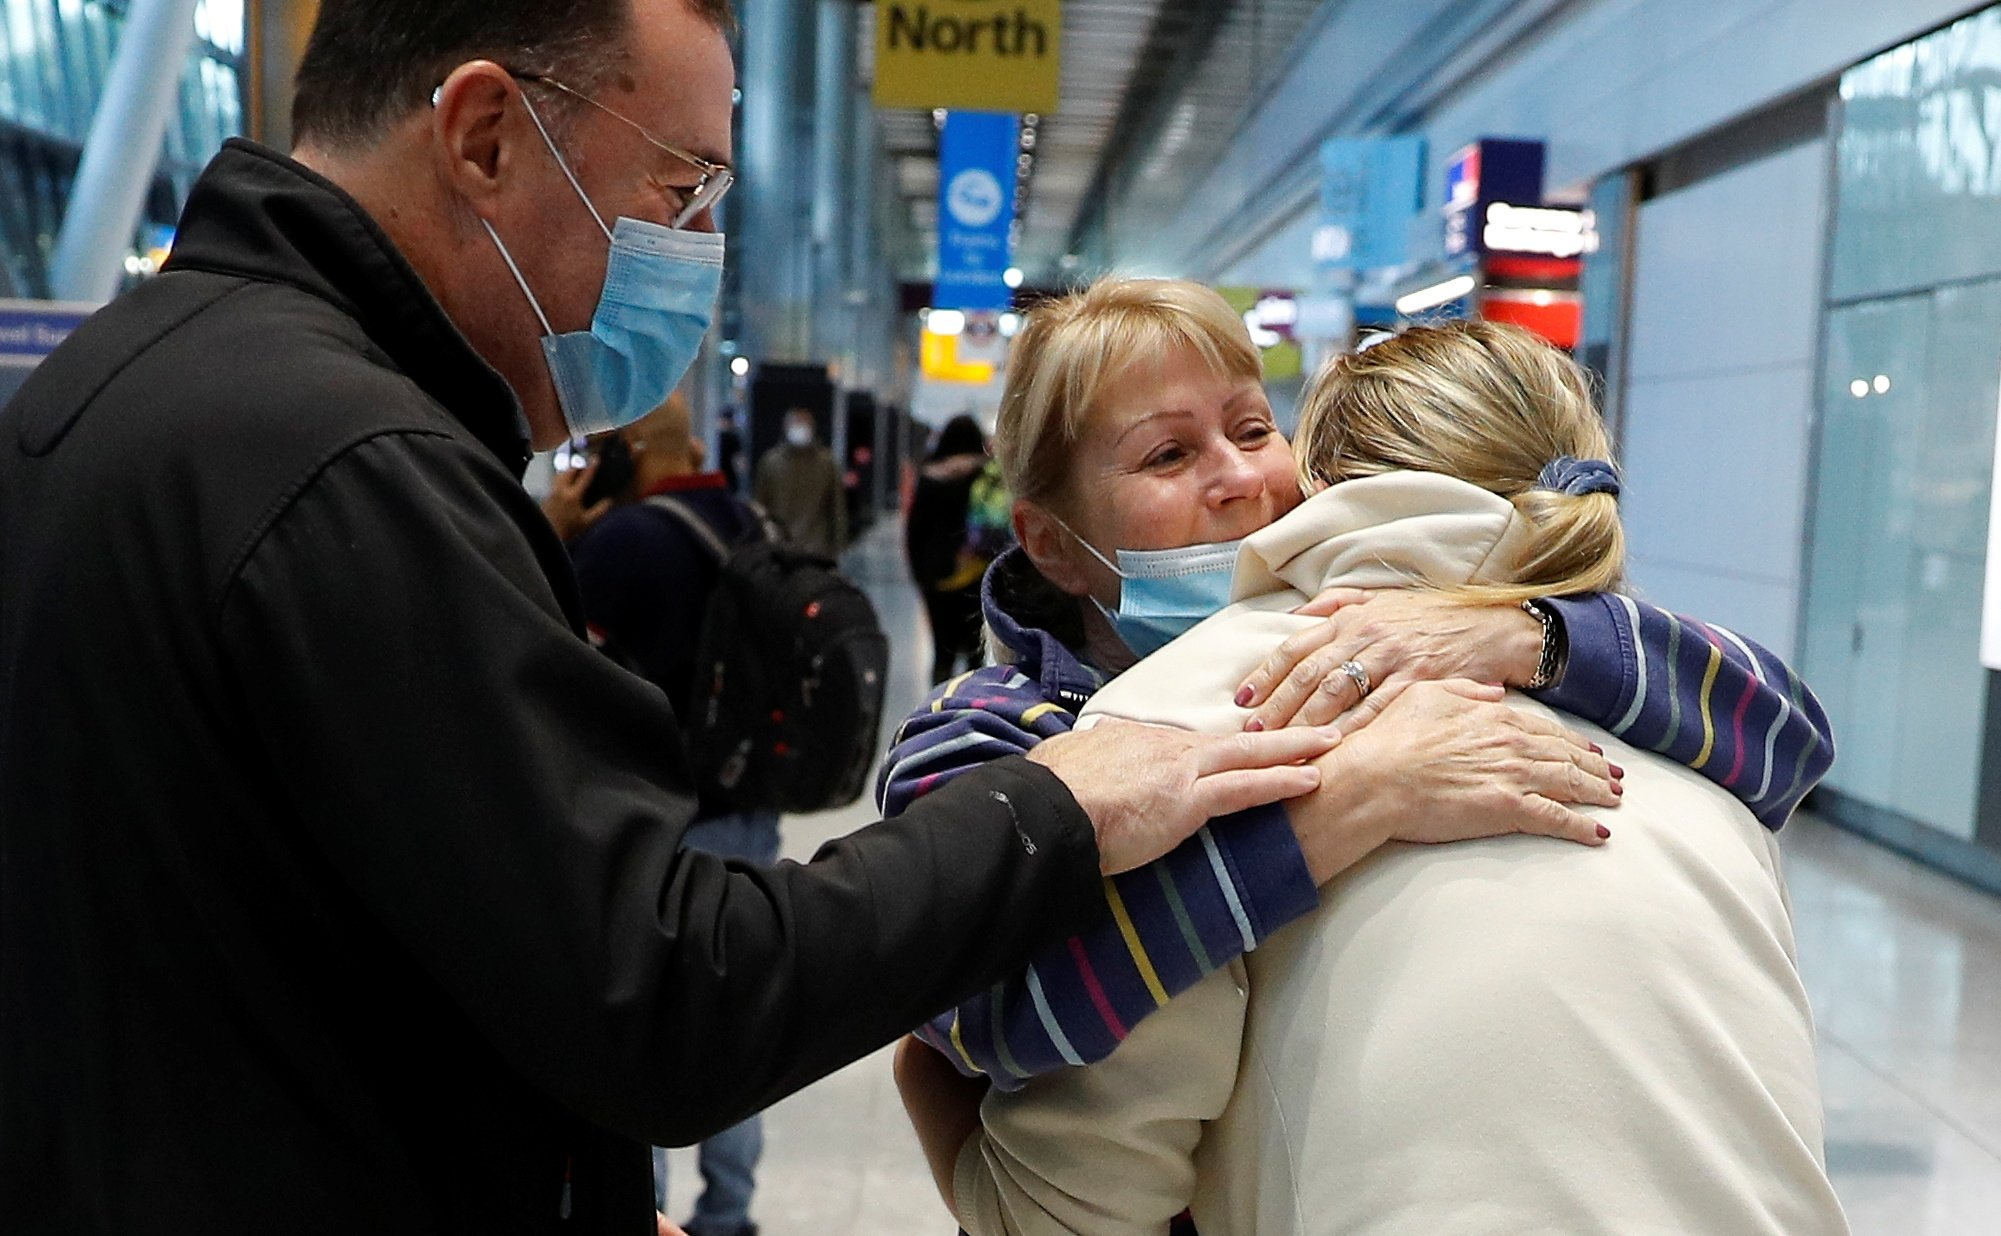 Claire and Steven Frohlich embrace their daughter who returned from the U.S., in the international arrivals area of Terminal 5 at London's Heathrow Airport, Britain, Aug. 2, 2021. (Reuters Photo)